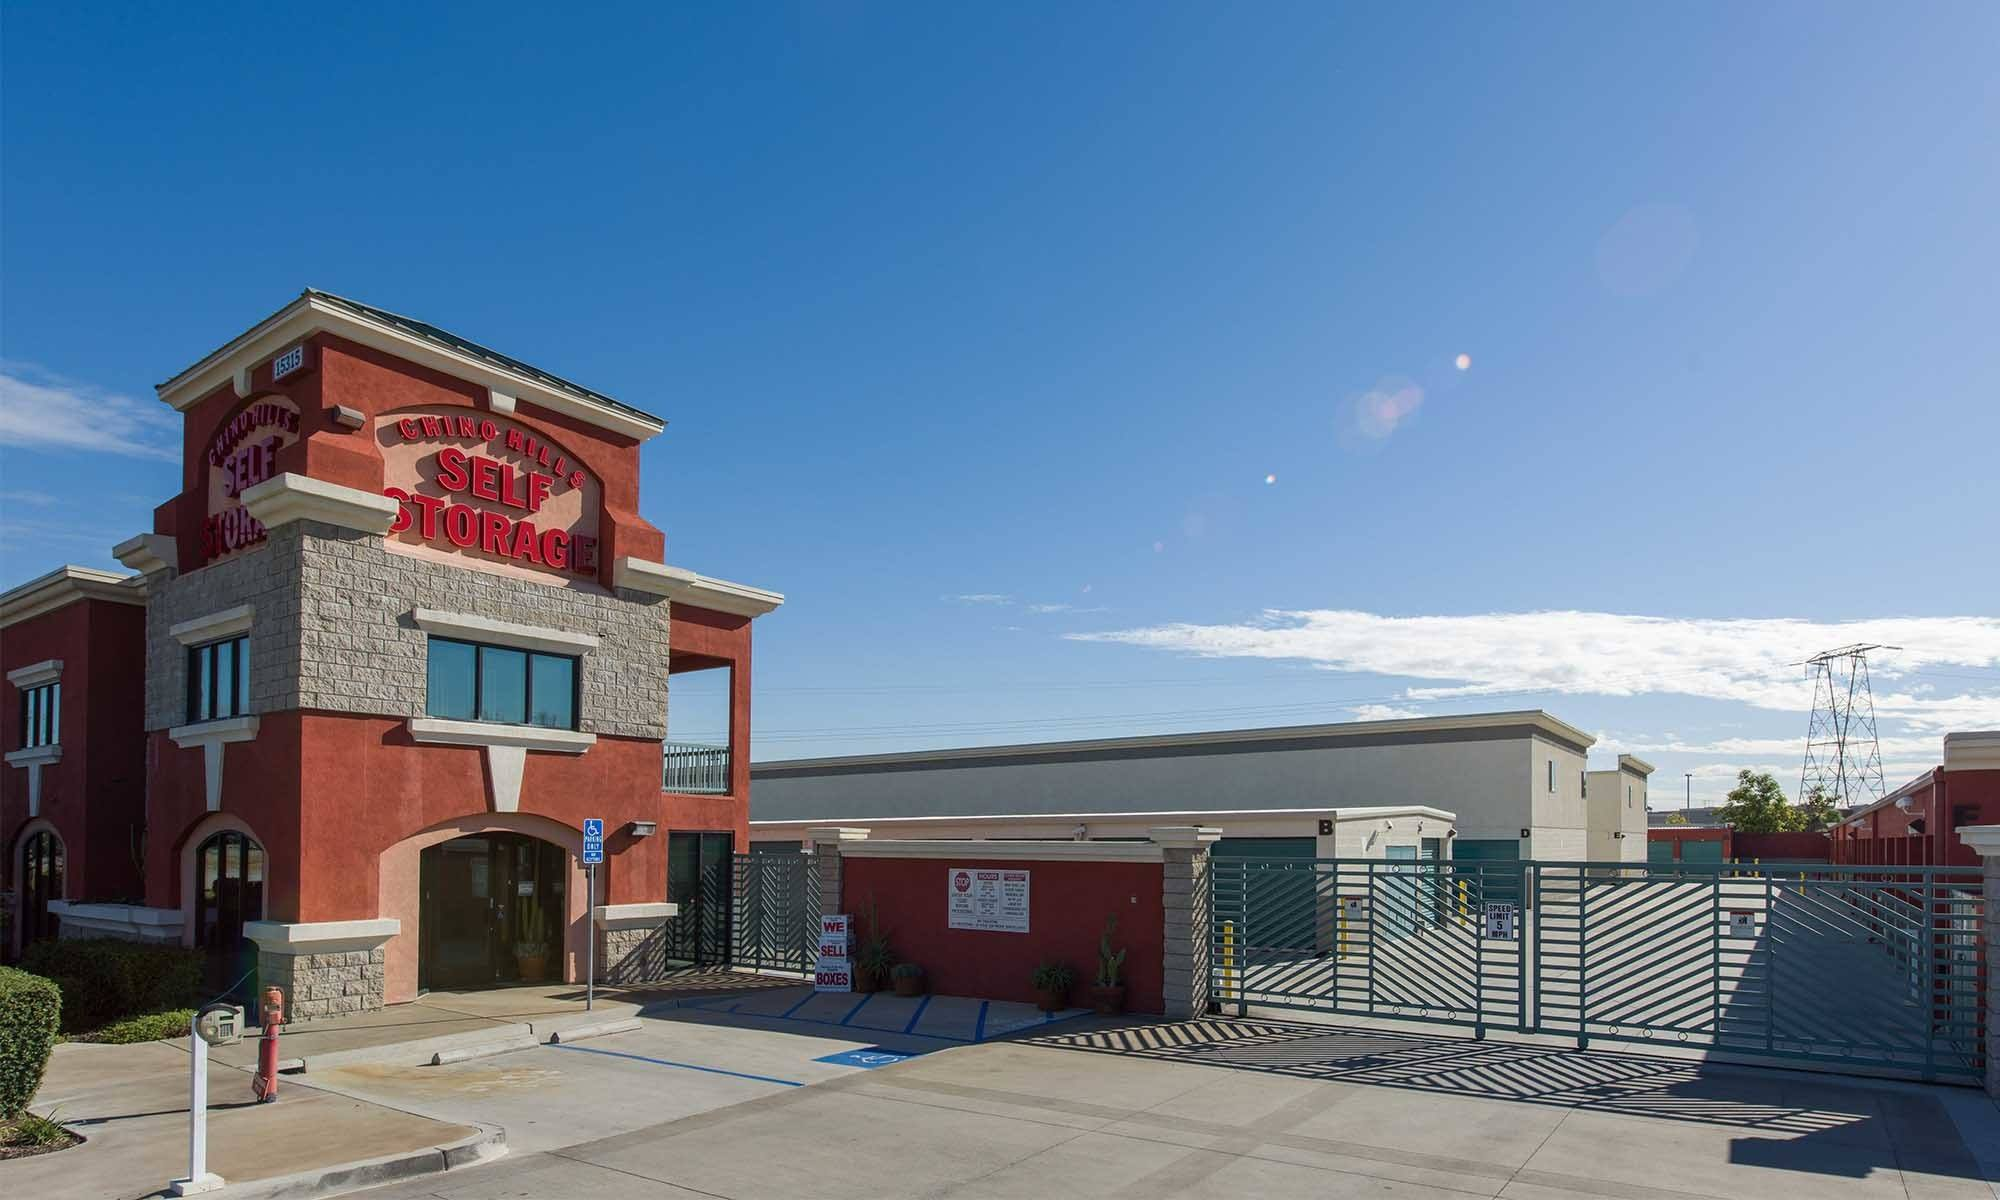 Visit Smart Self Storage locations throughout the state of CA